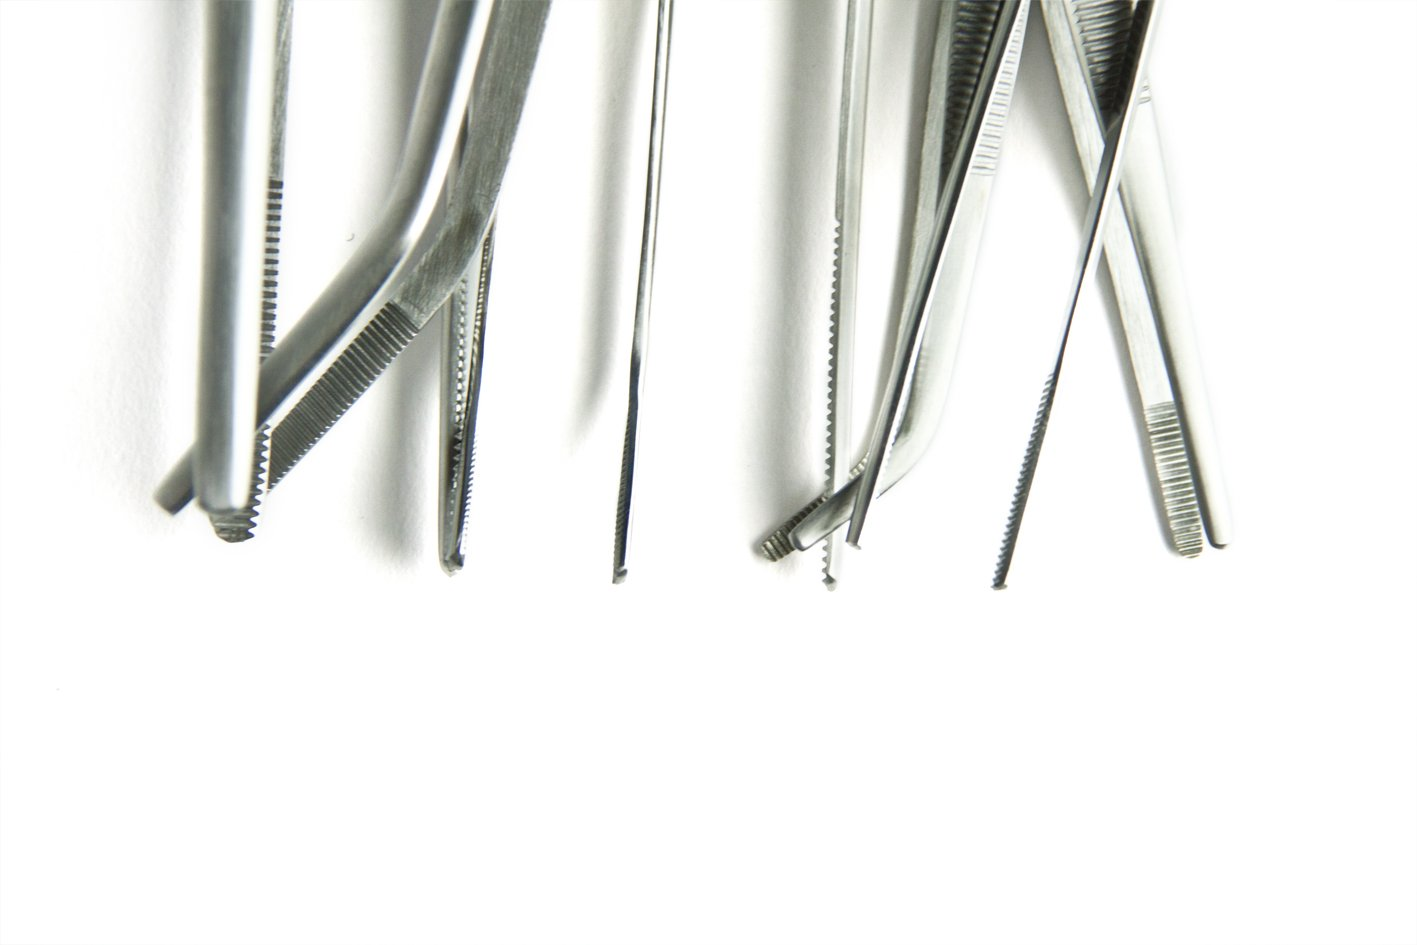 Straight, 60 cm RepTech low cost stainless steel tweezers straight or angled many